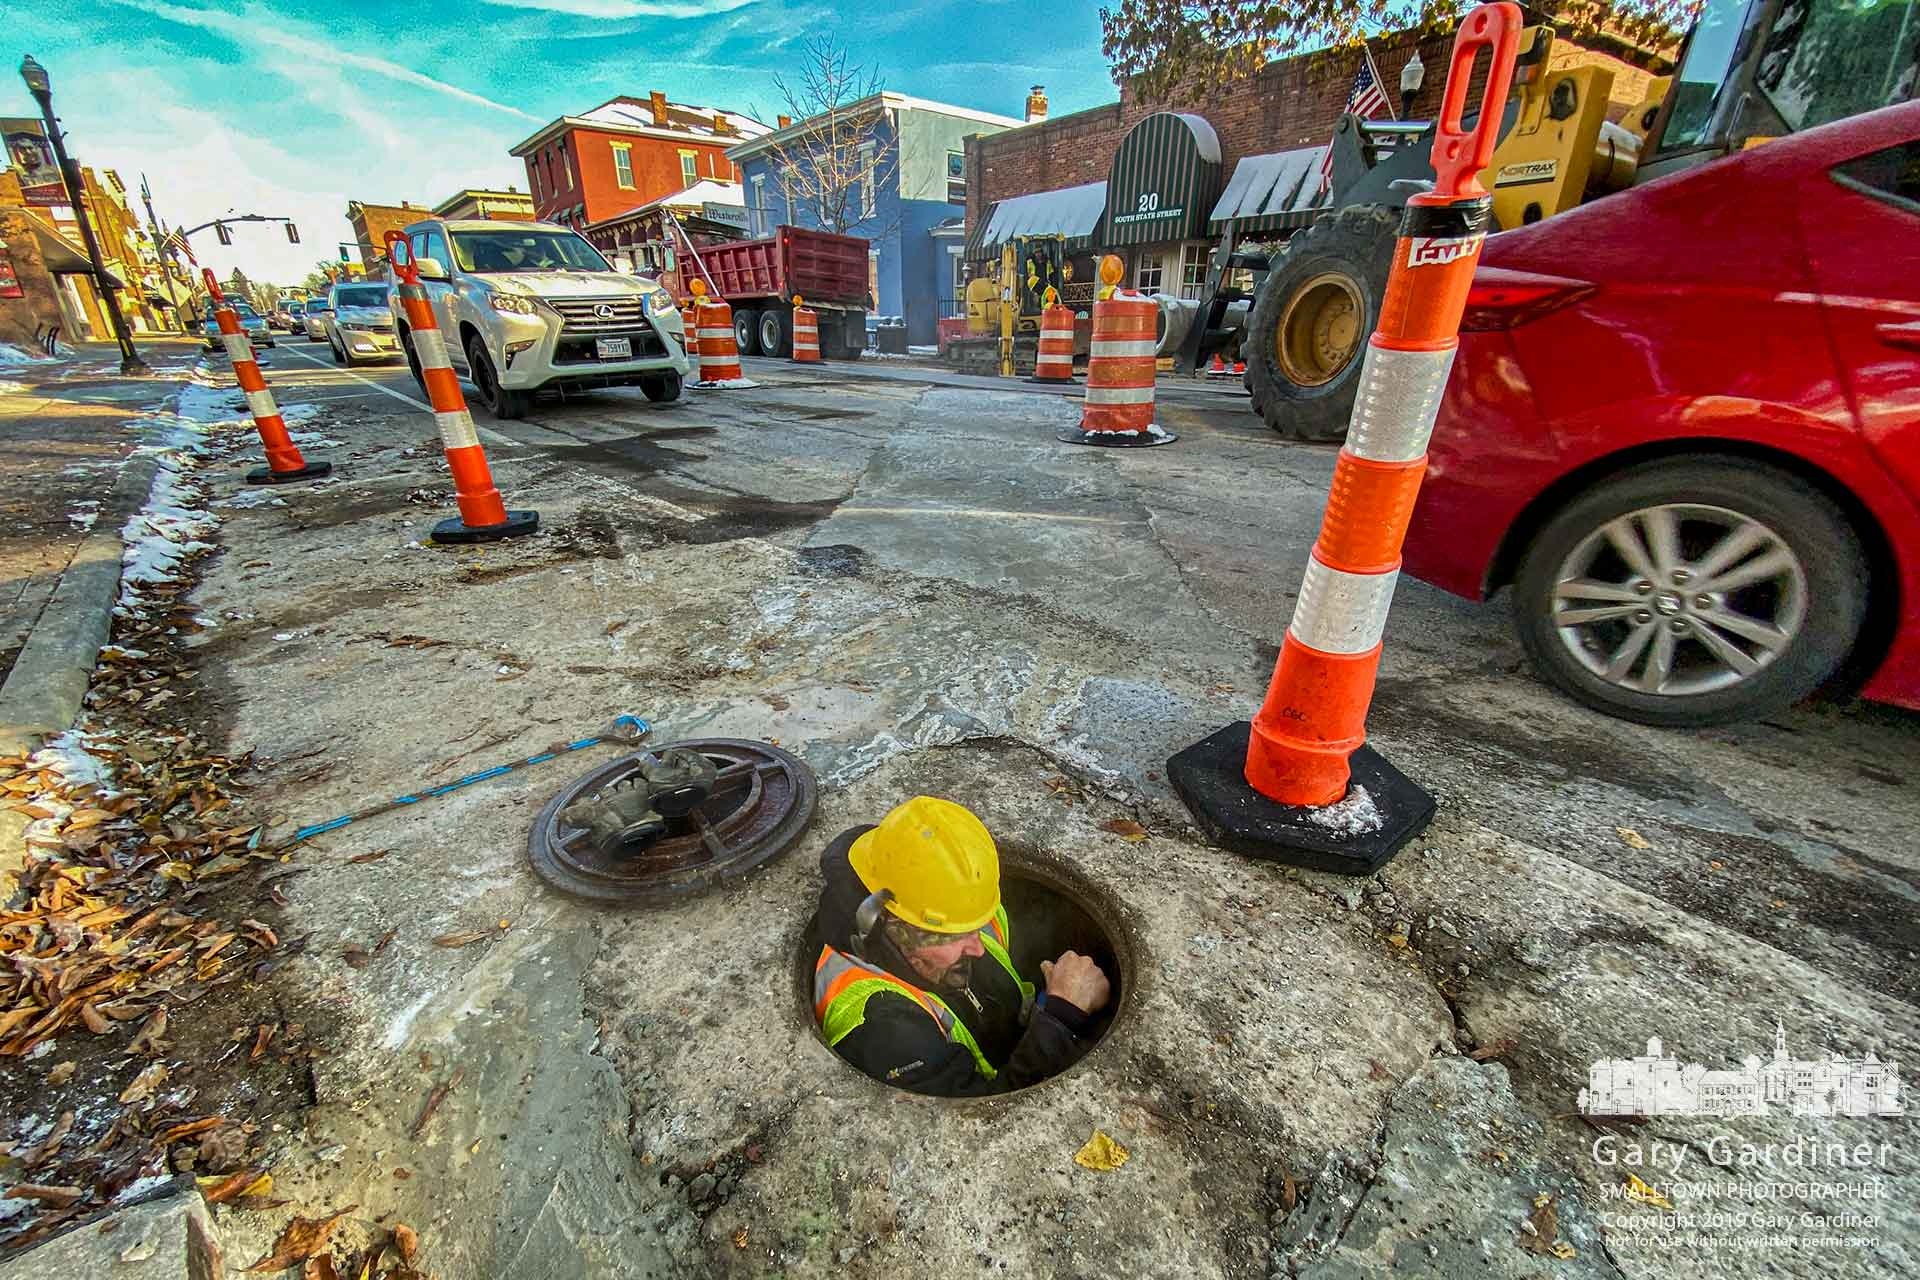 A worker lowers himself into the sewer in front of city hall to place a laser system to measure the proper alignment for a connecting a new sewer line to the main sewer in front of Java Central. My Final Photo for Nov. 13, 2019